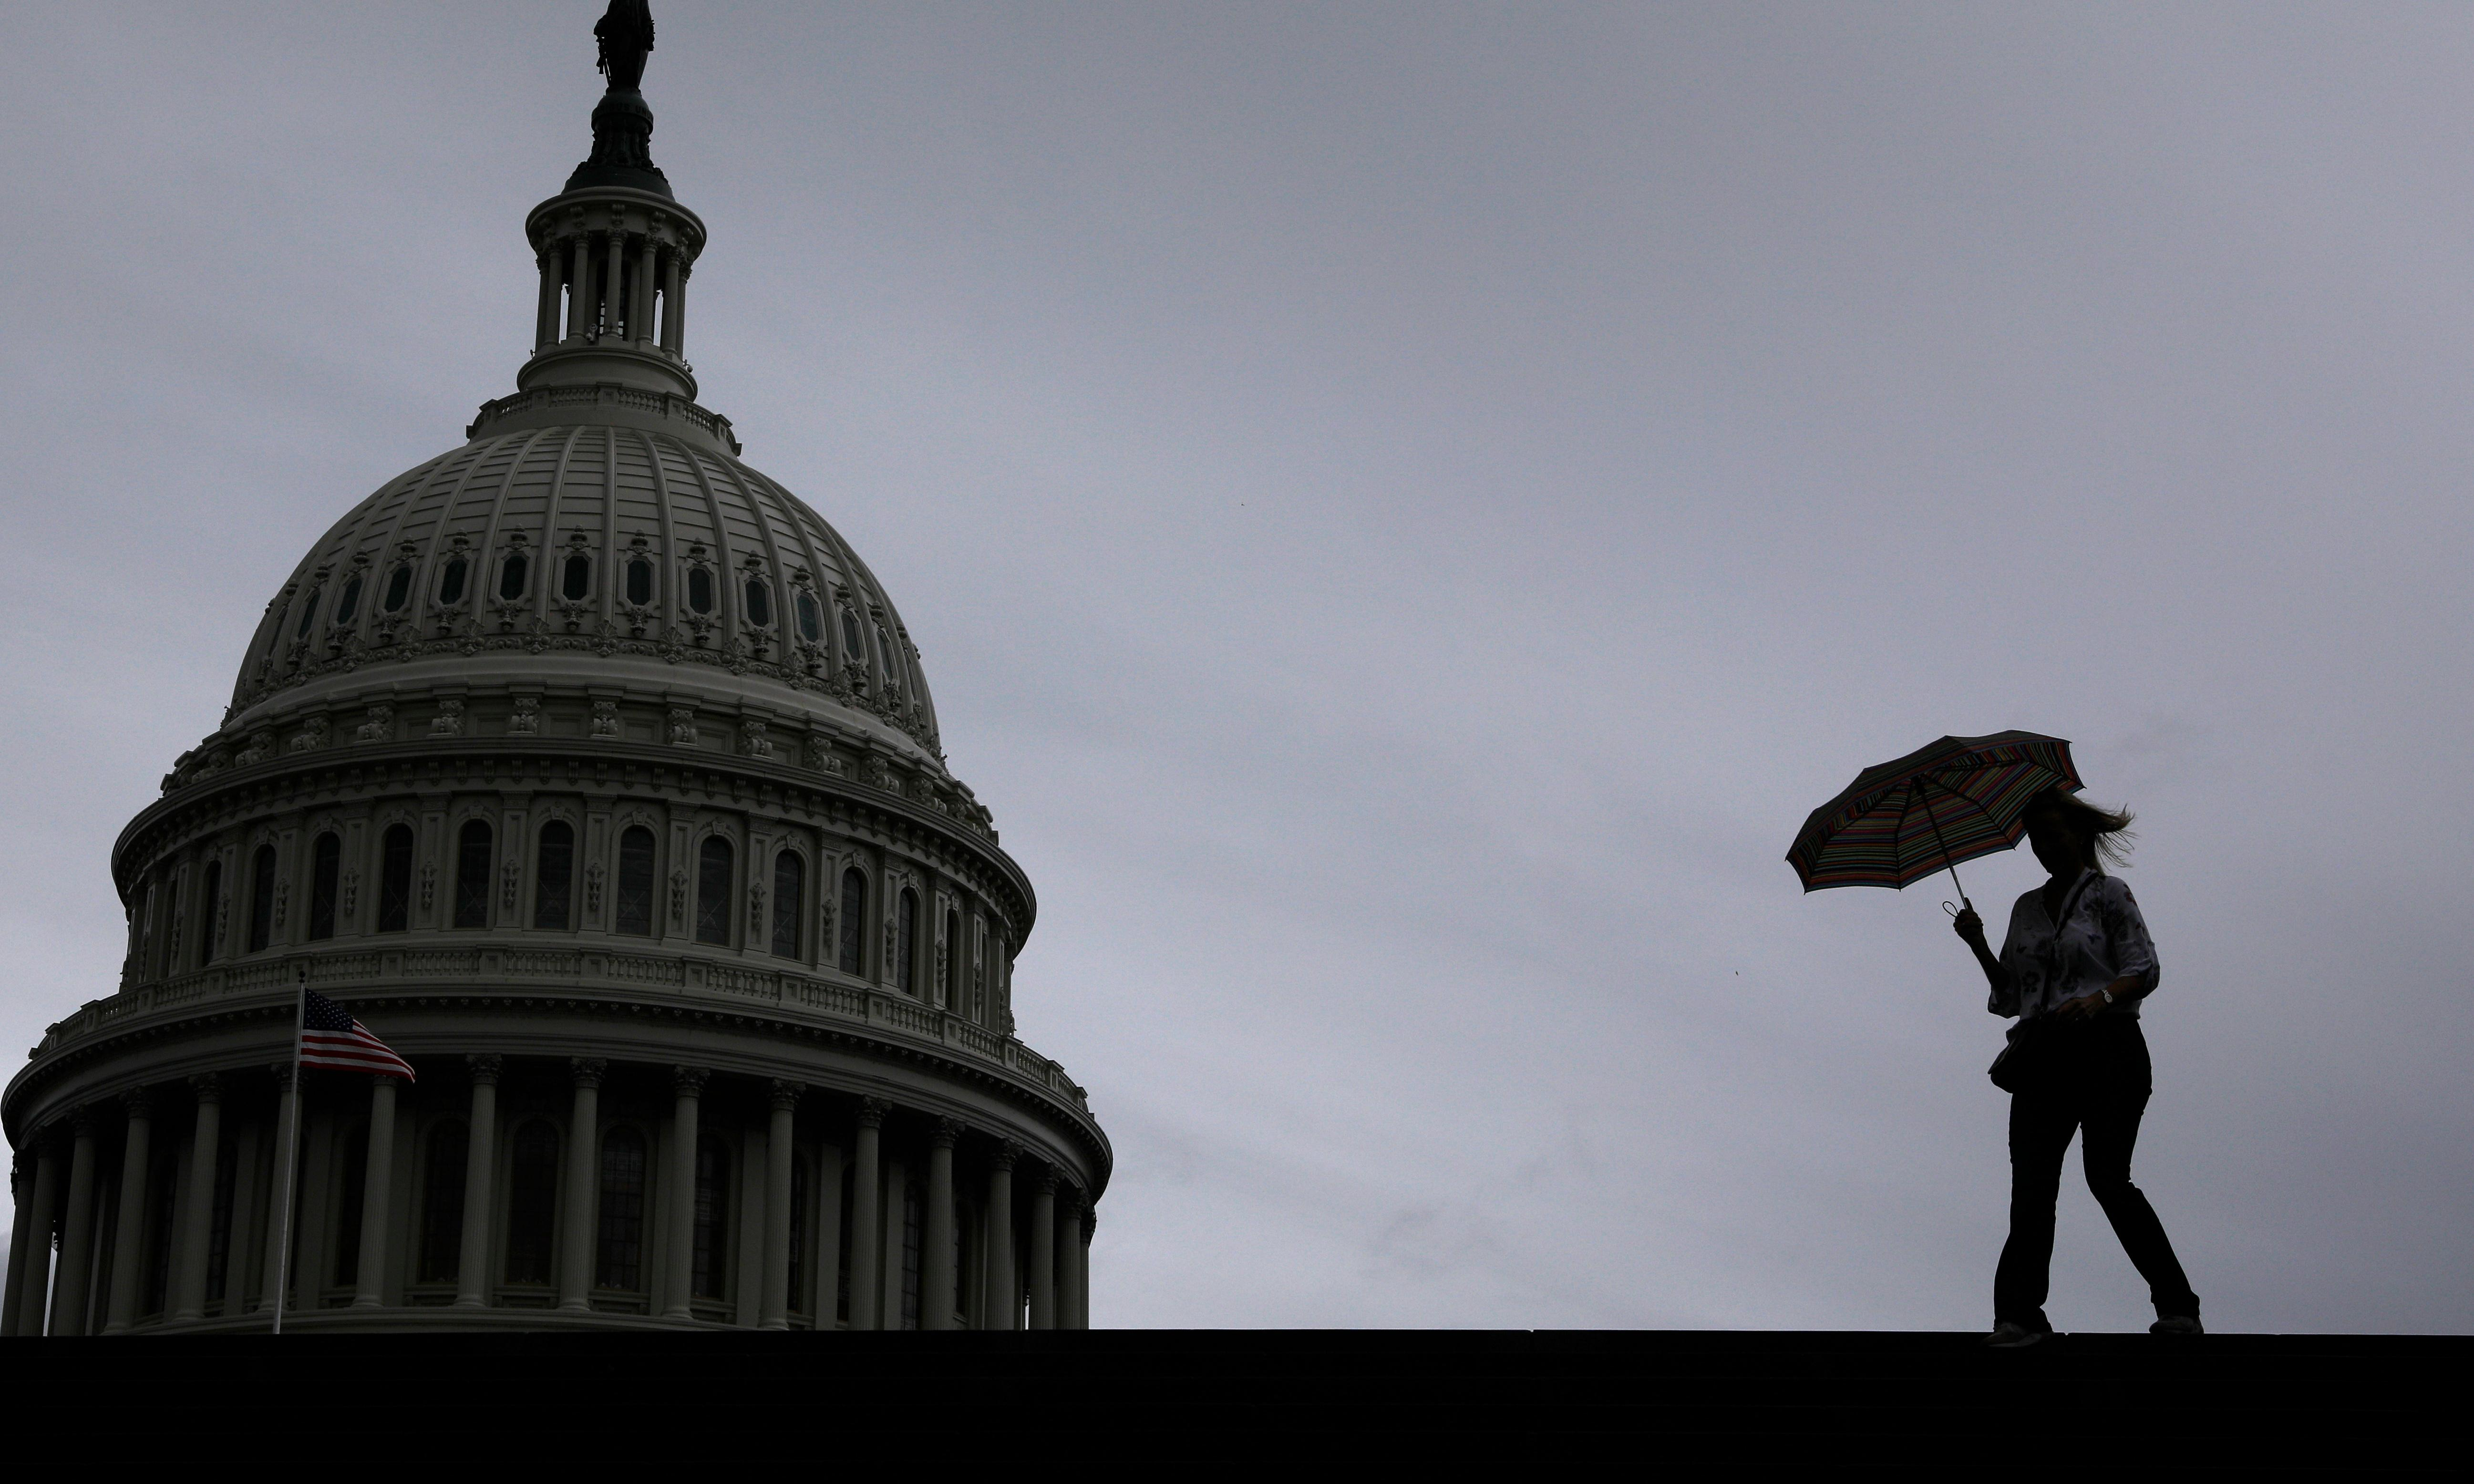 Nepotism and partisanship in the US civil service is reaching a crisis point